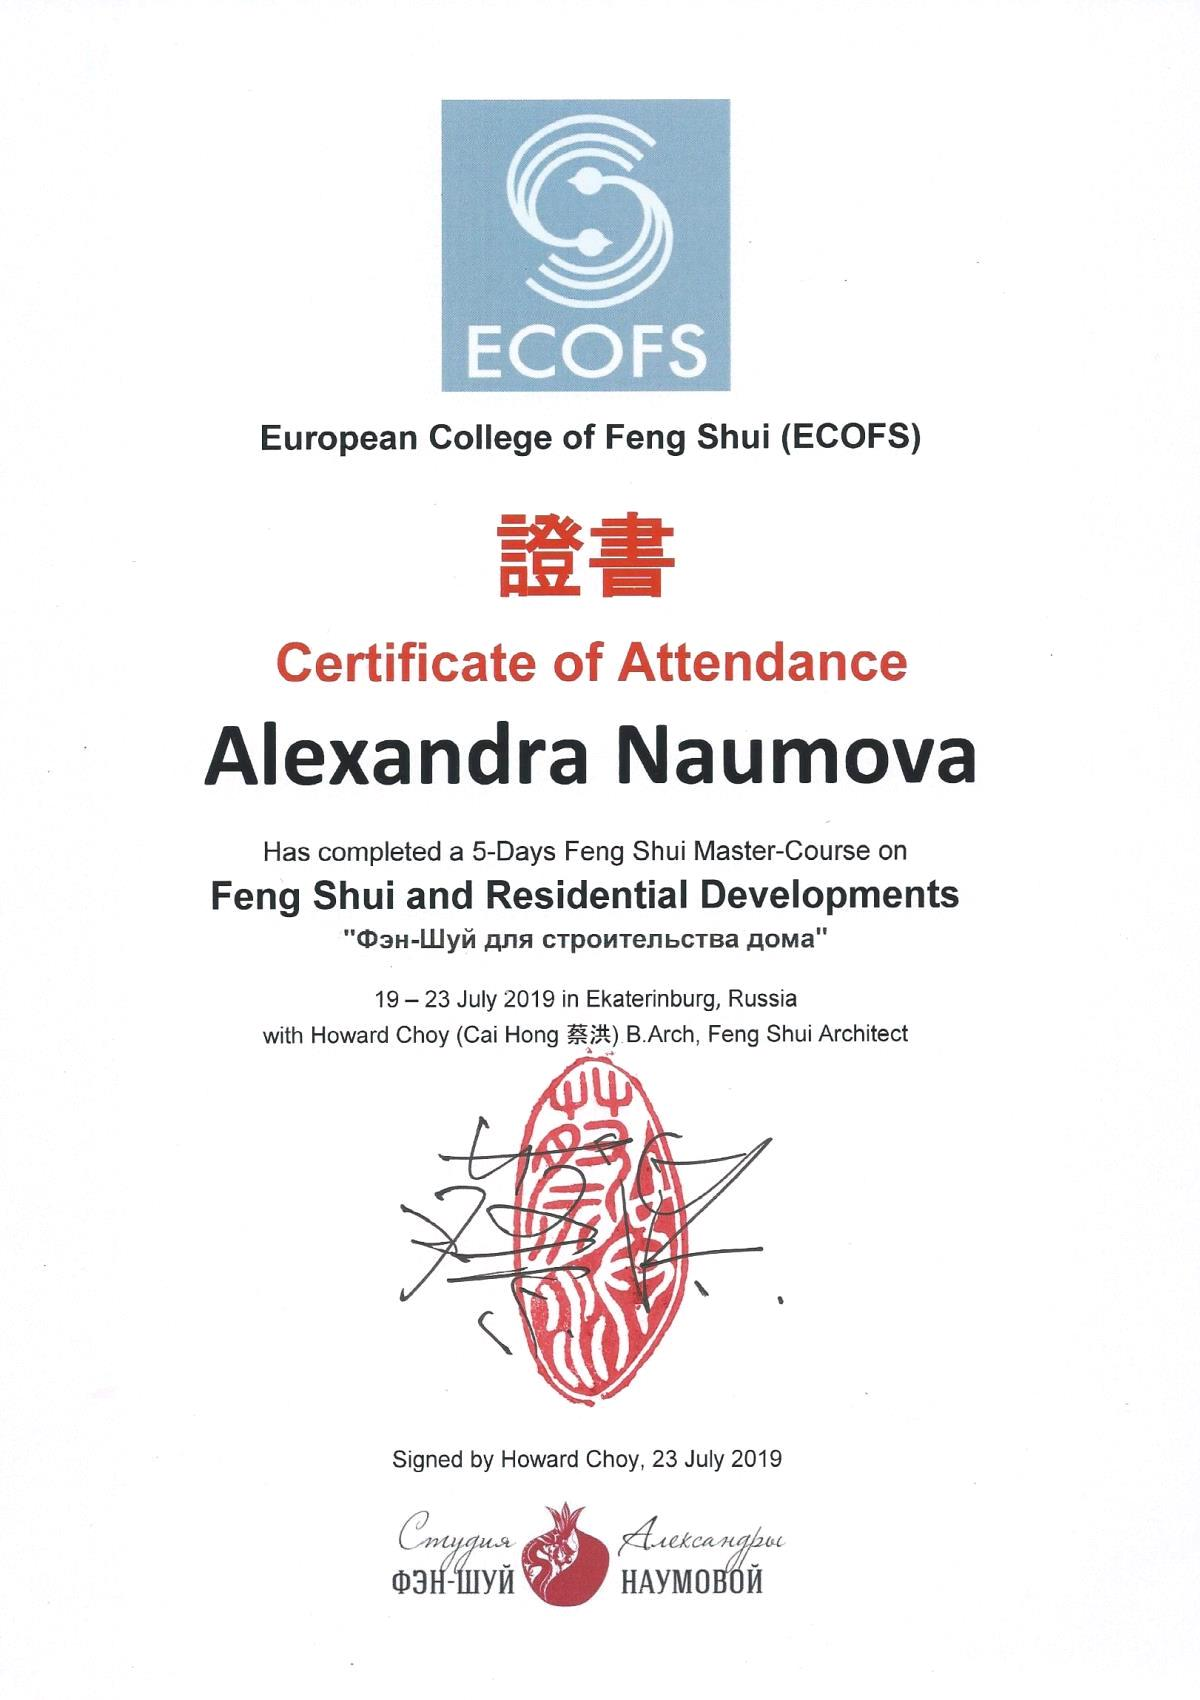 European College of Feng Shui ECOFS